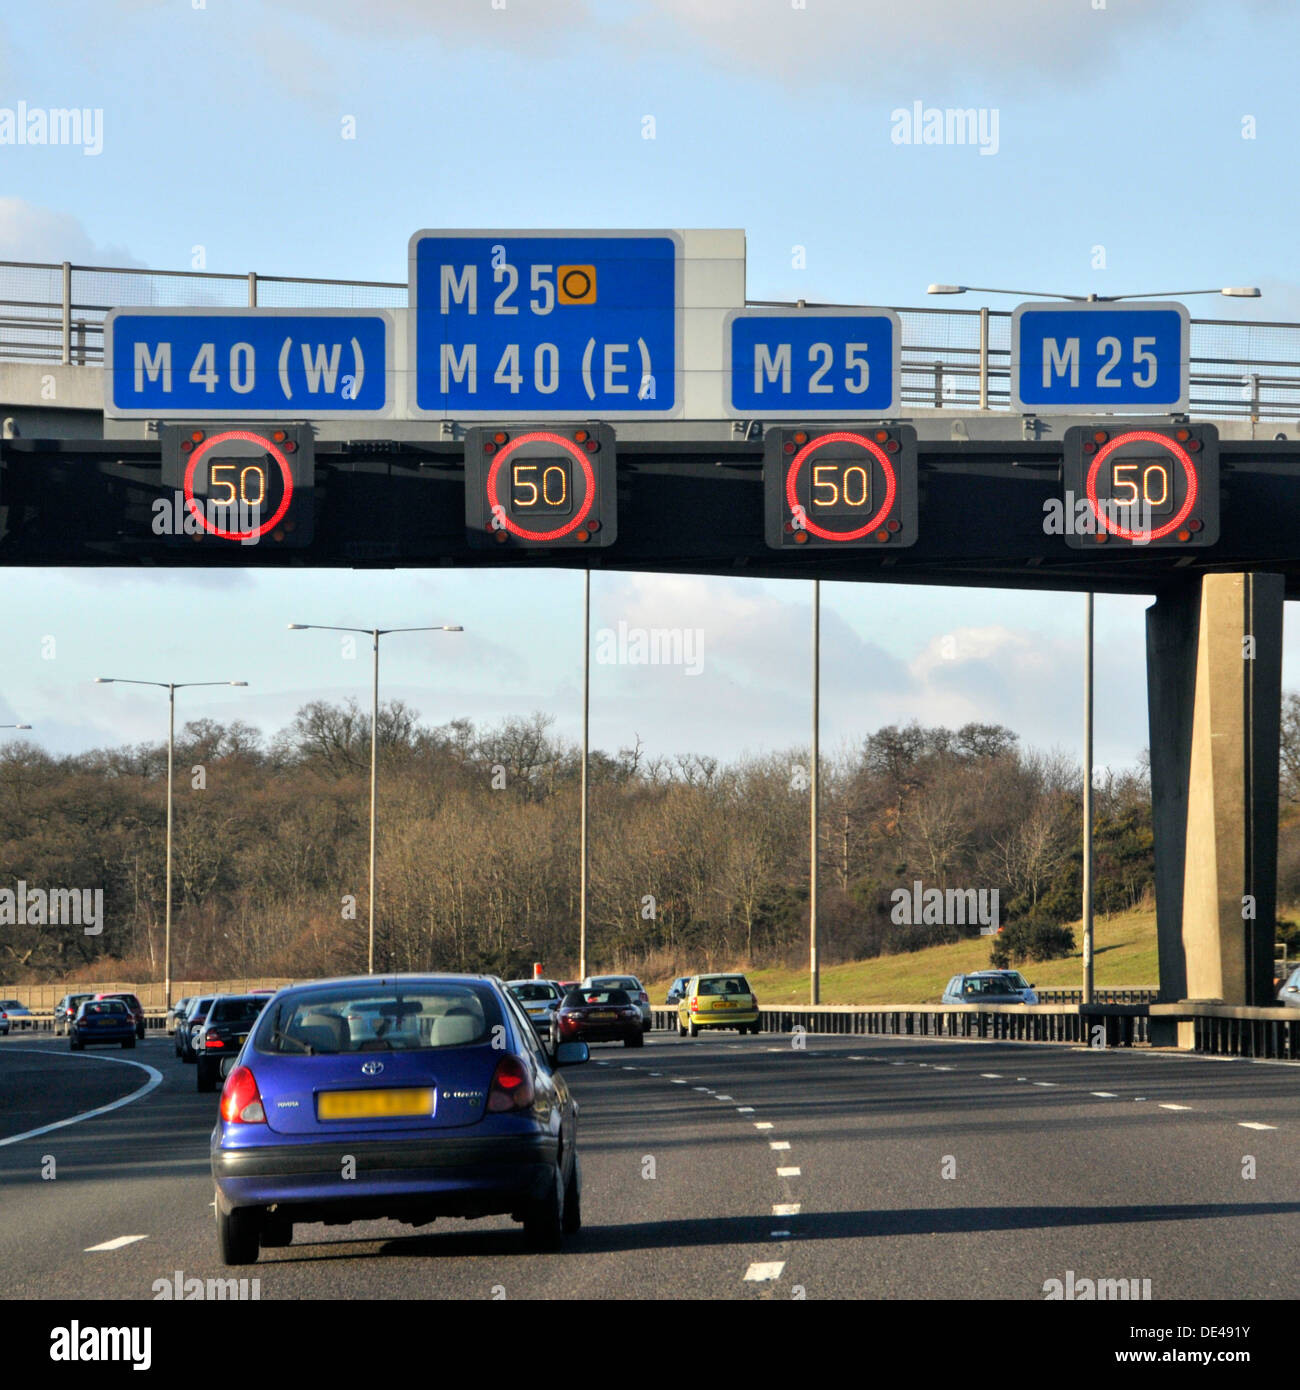 Variable speed limit signs on overhead gantry illuminated on M25 motorway near junction with M40 - Stock Image